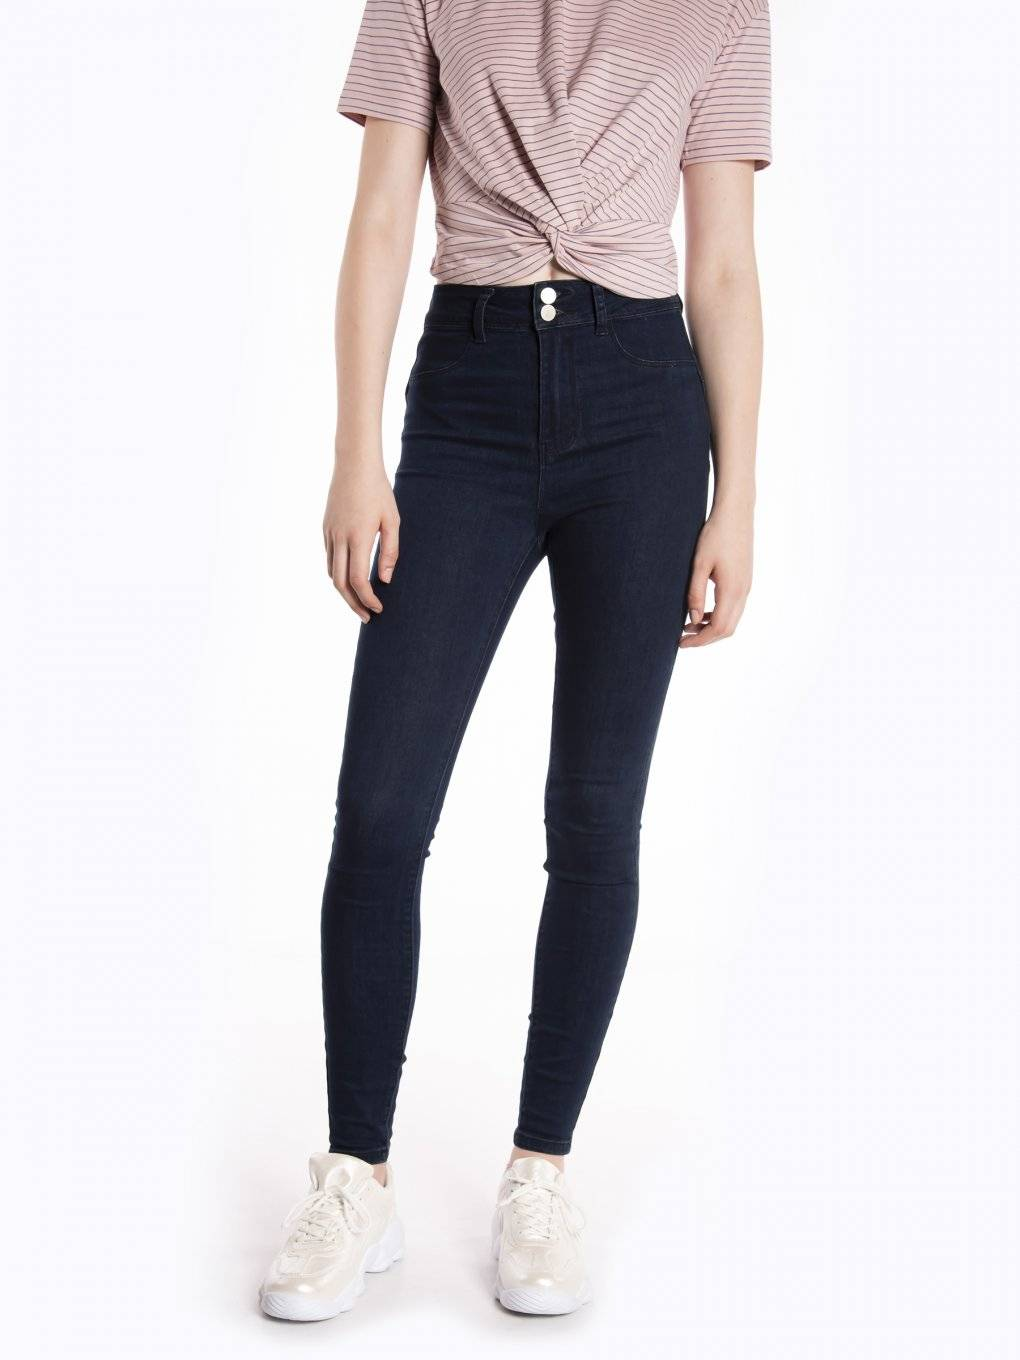 High waisted skinny jeans in dark blue wash